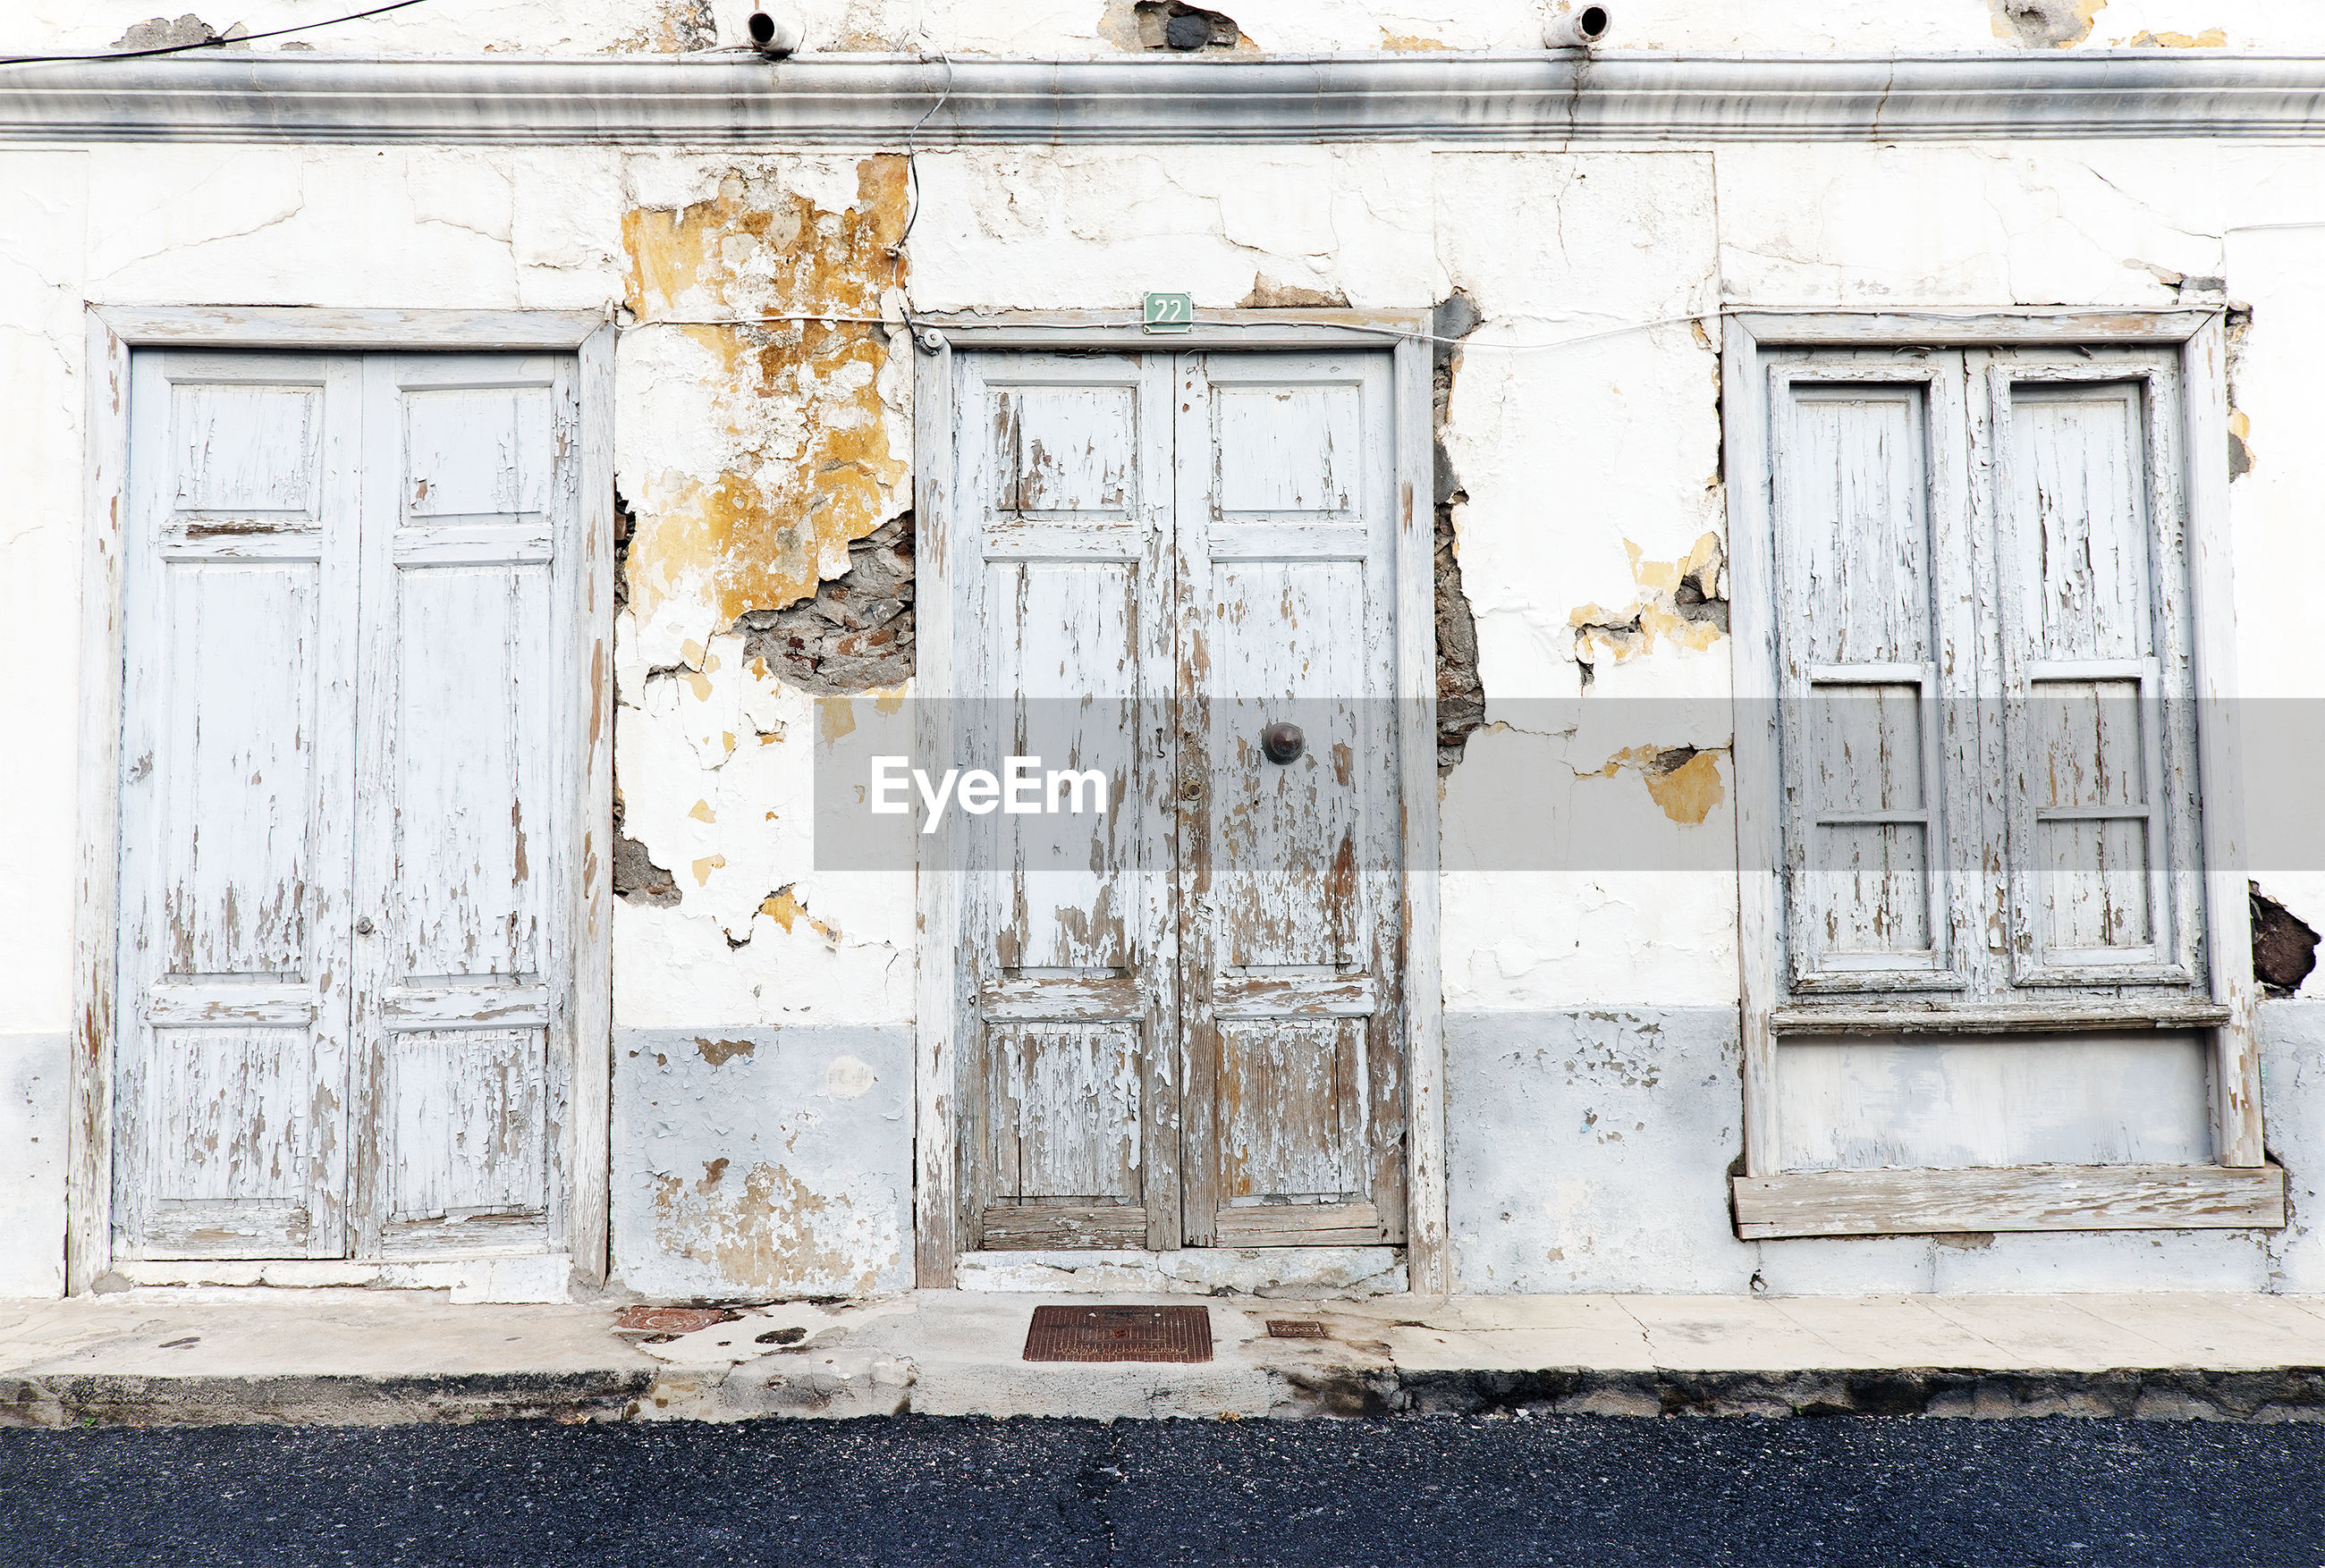 Weathered wooden entrance doors of building